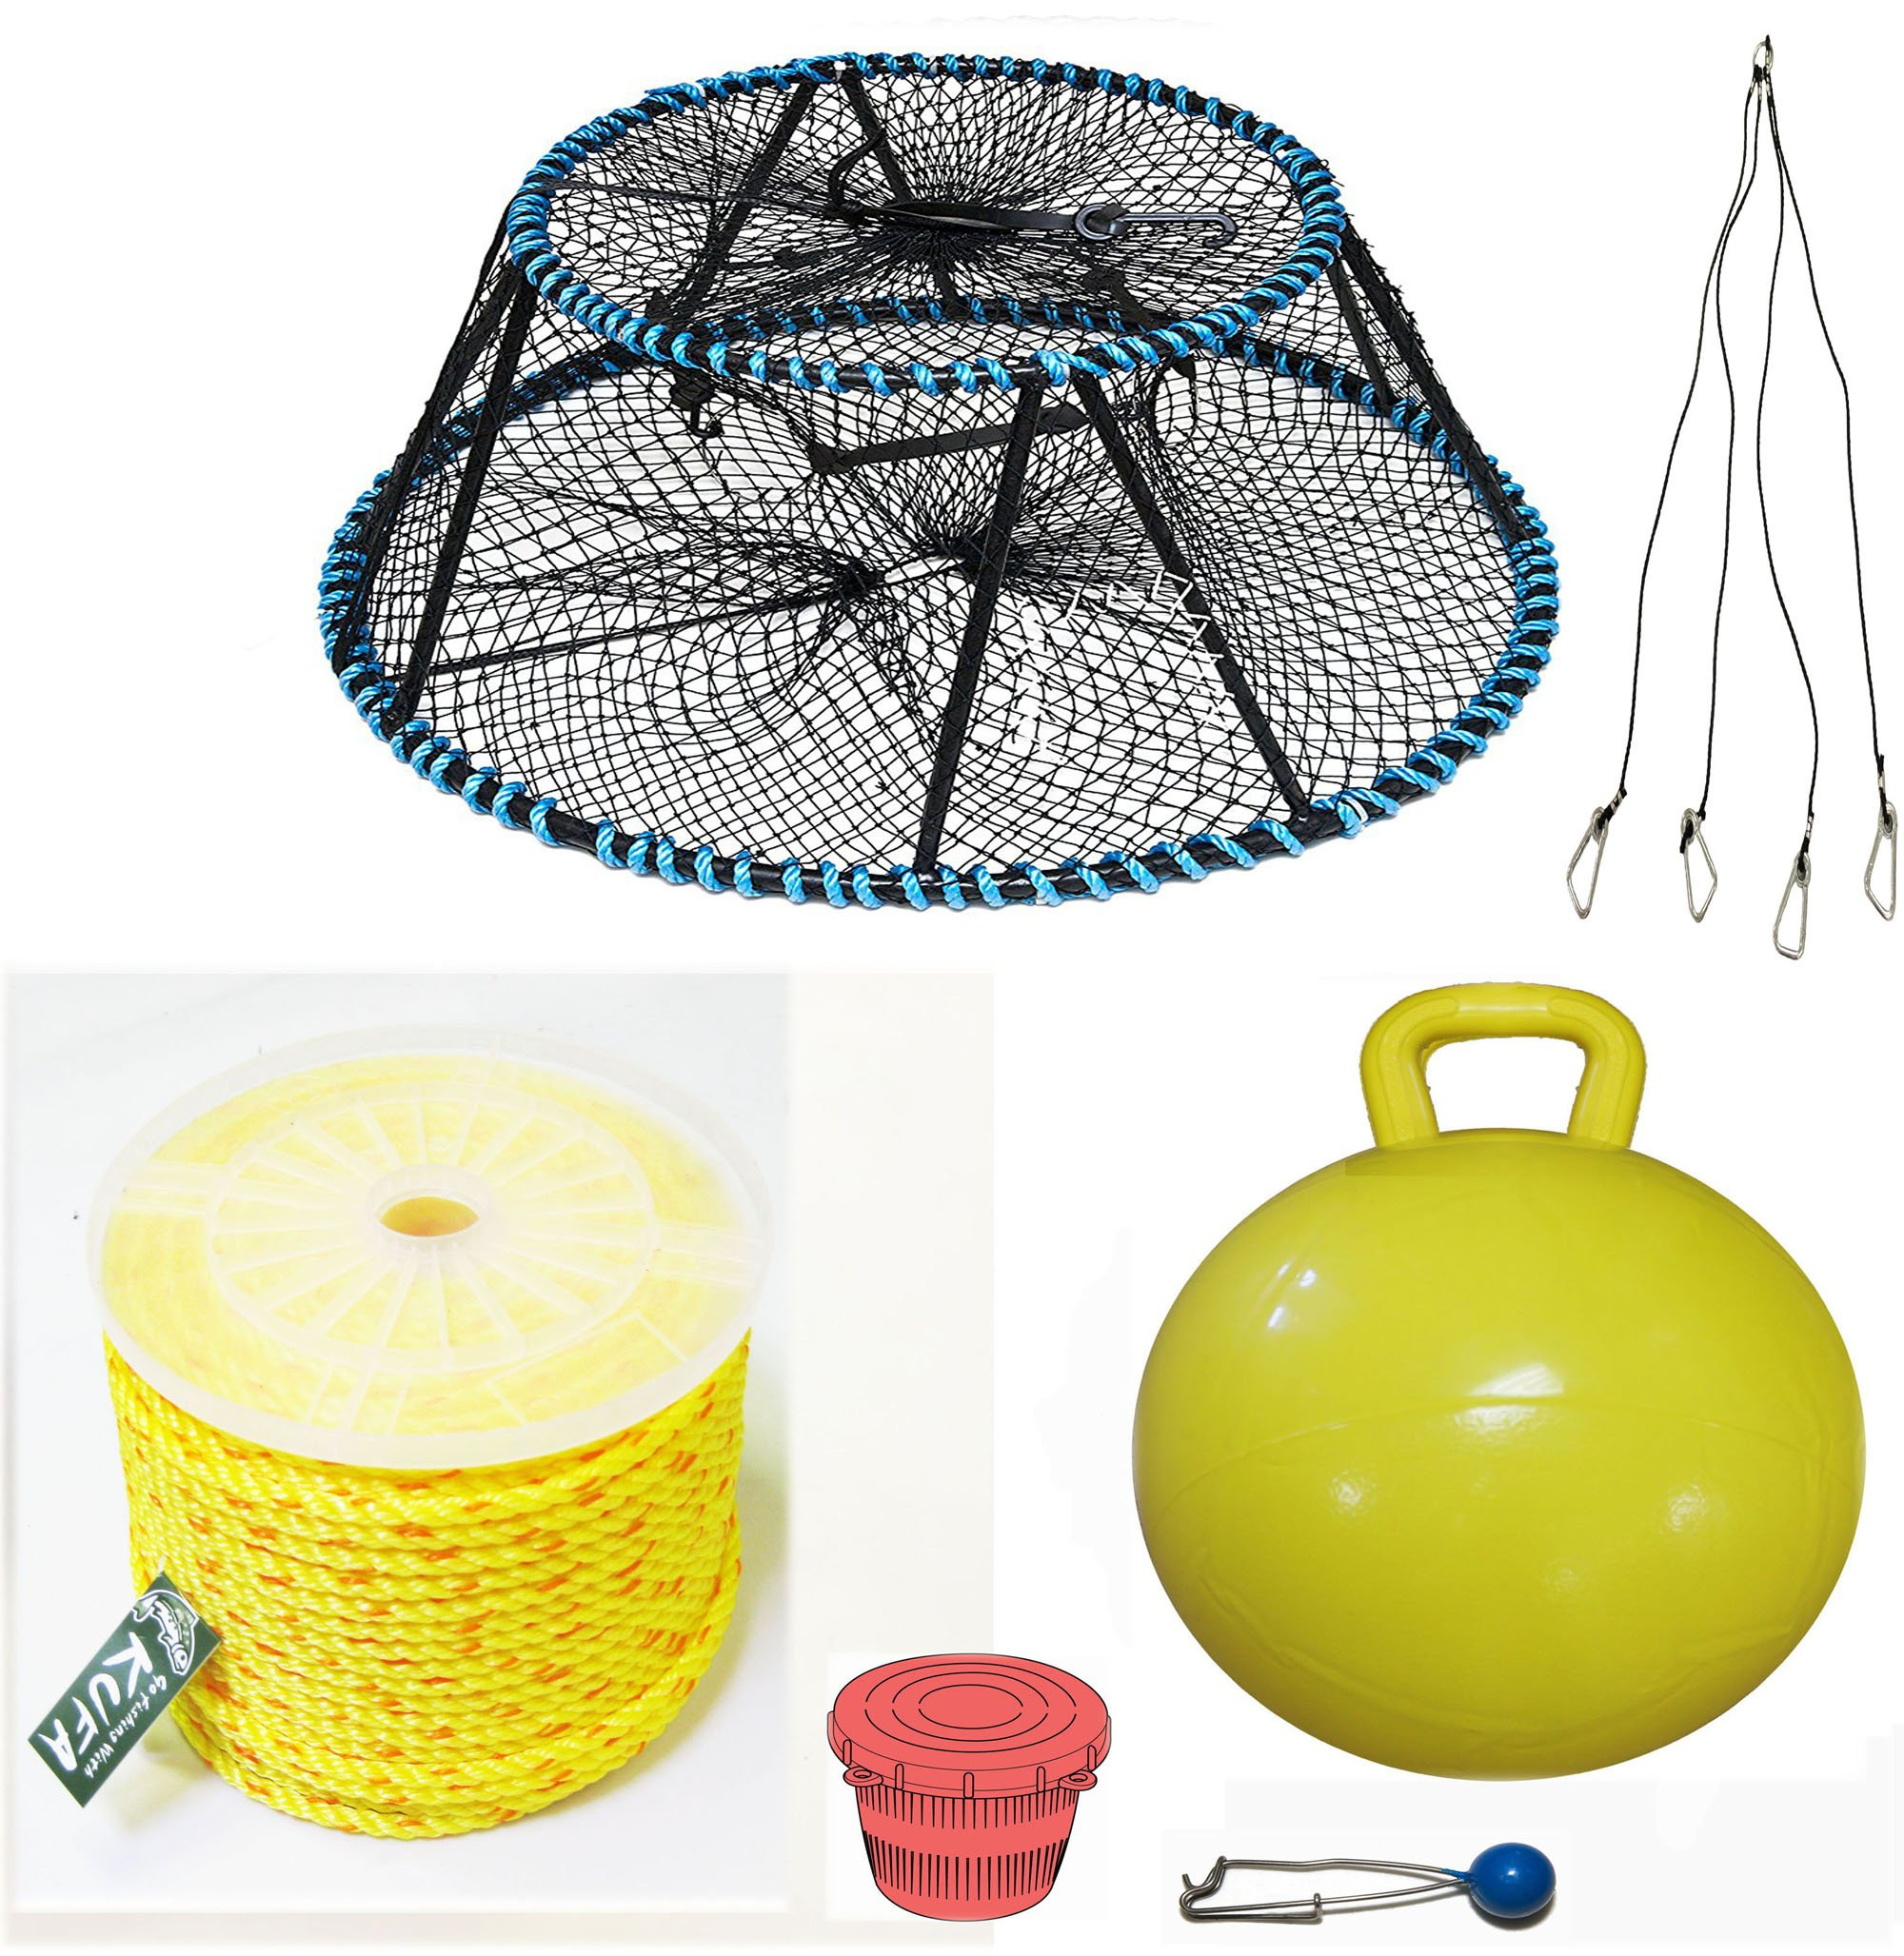 KUFA Sports Tower Style Prawn trap with 400' rope, Yellow float, Vented Bait Jar & Harness combo (CT130+PAS5+HA5) by KUFA Sports